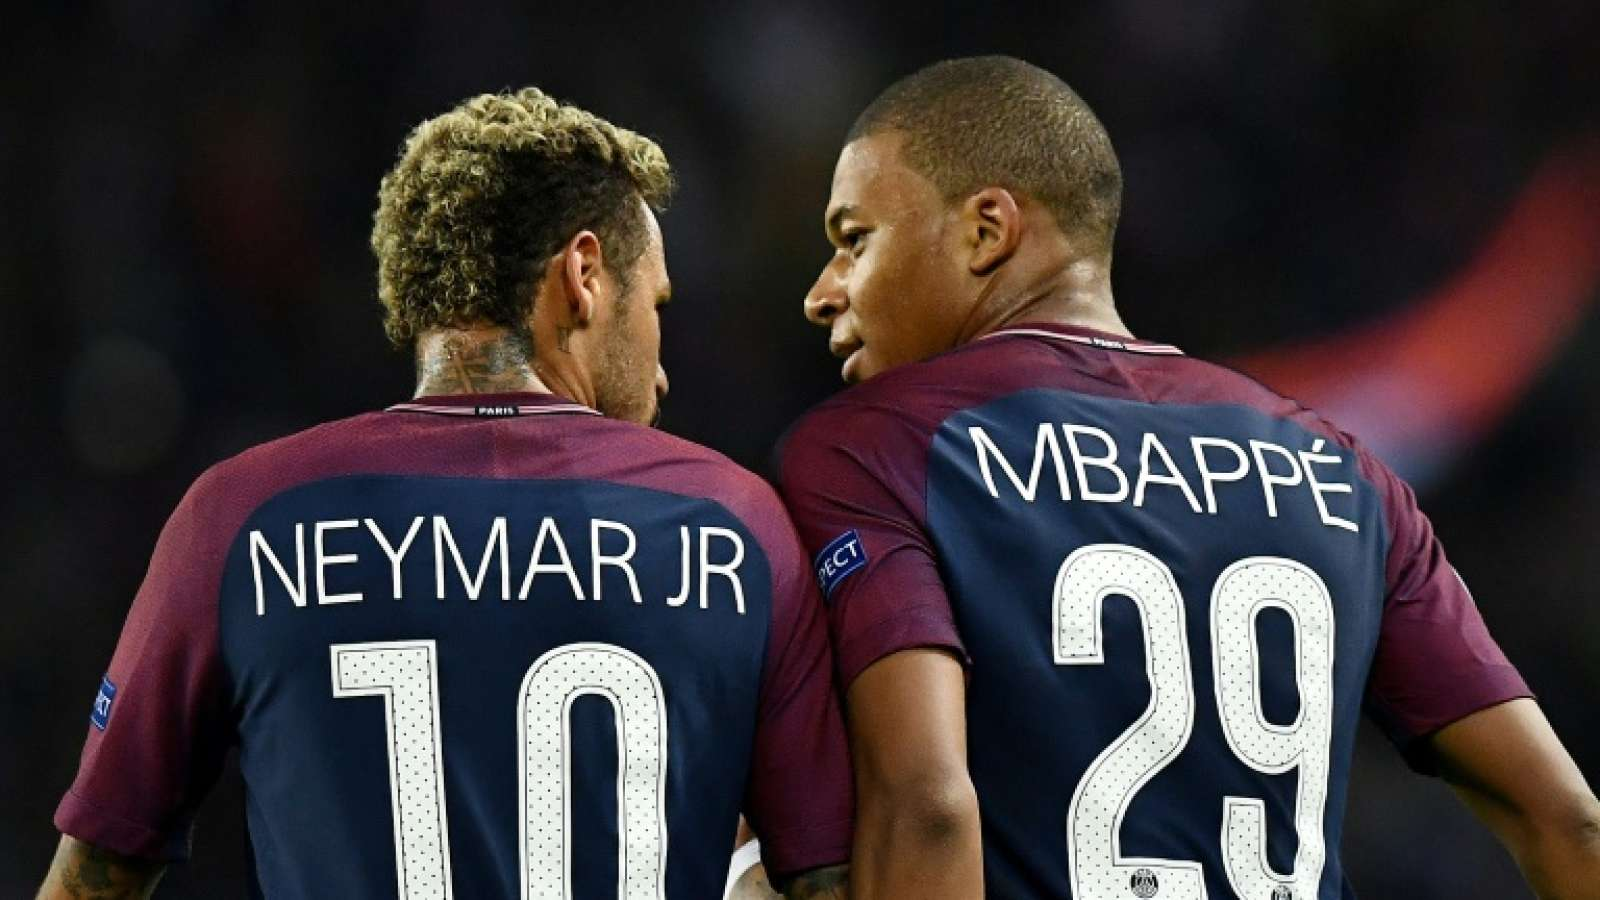 neymar and mbappe wallpapers